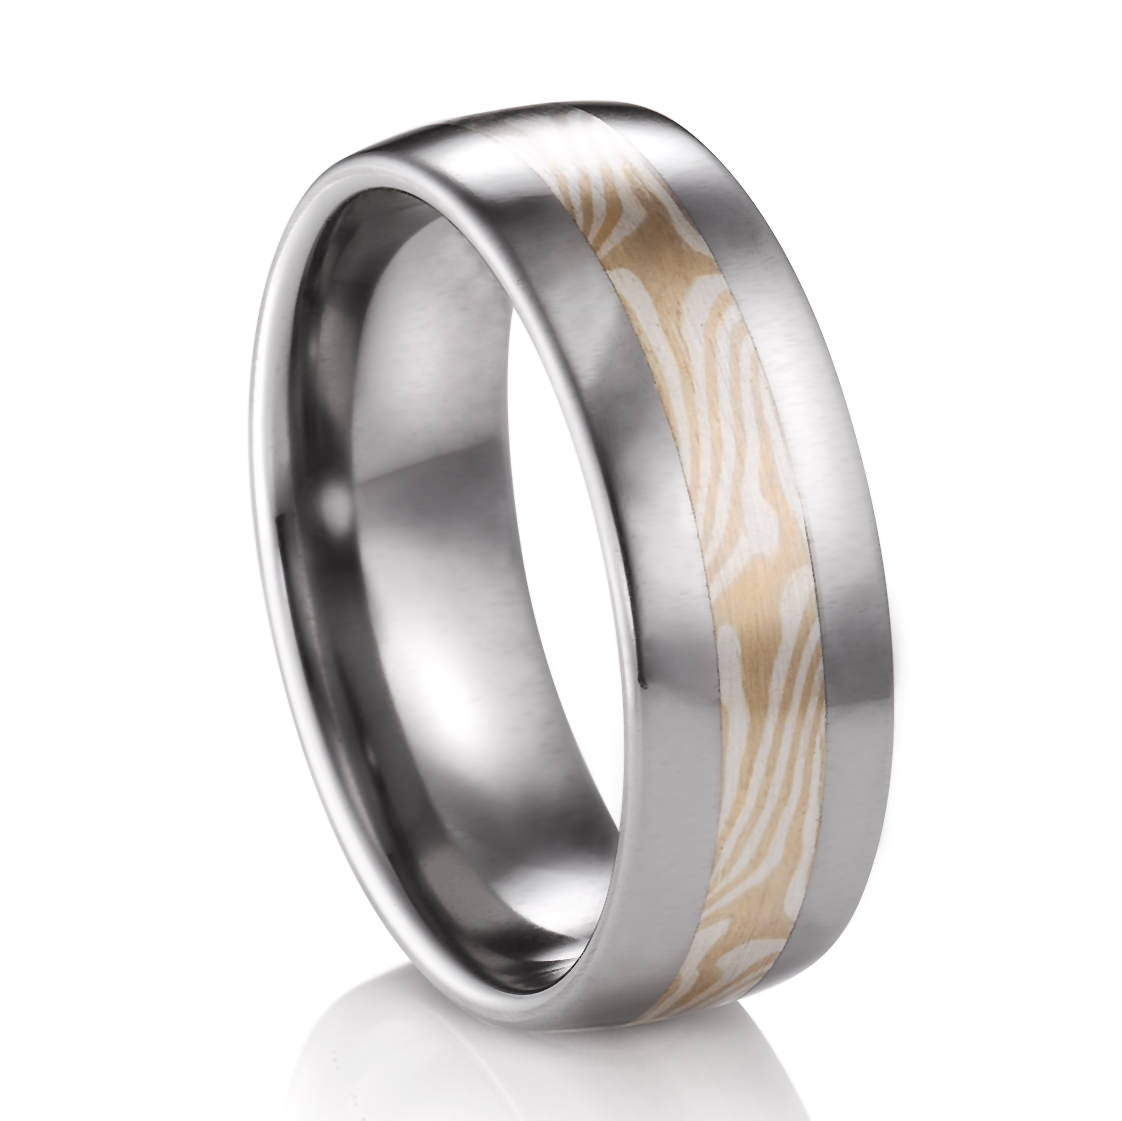 shop wedding gane handmade livemaster yin item metal online technique mokume engagement rings in jewelry yang buy